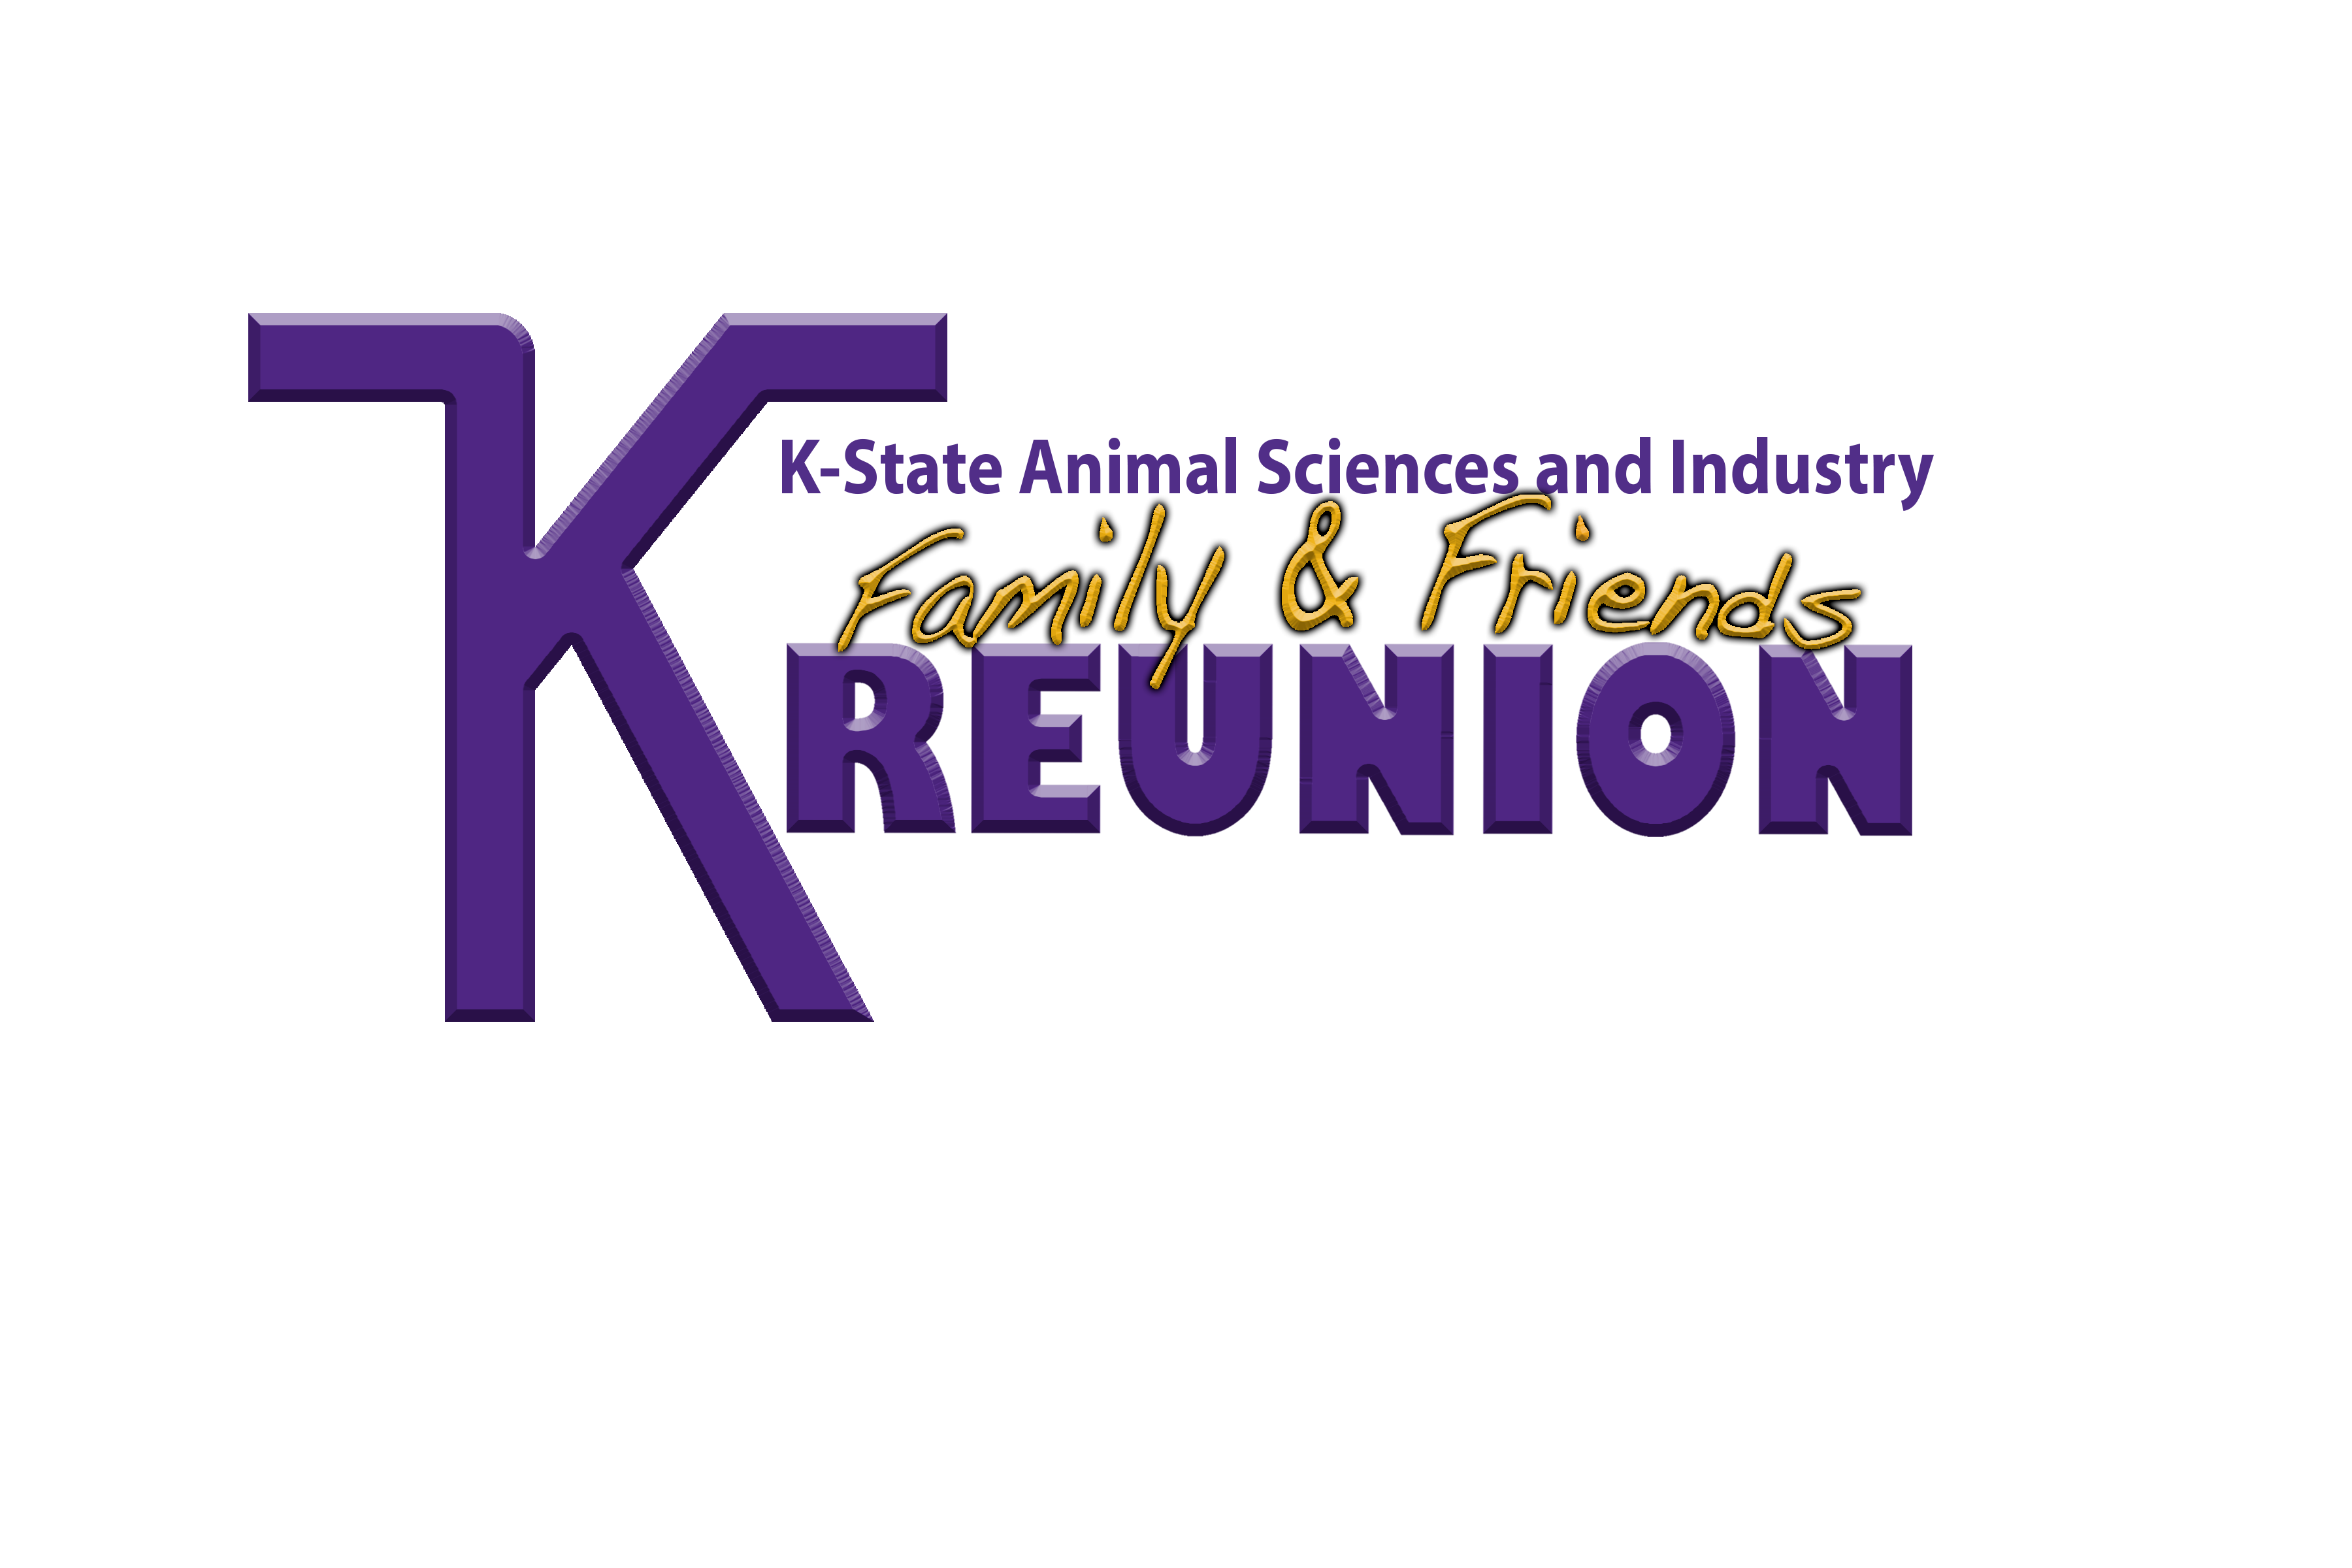 KSU ASI Family & Friends Reunion